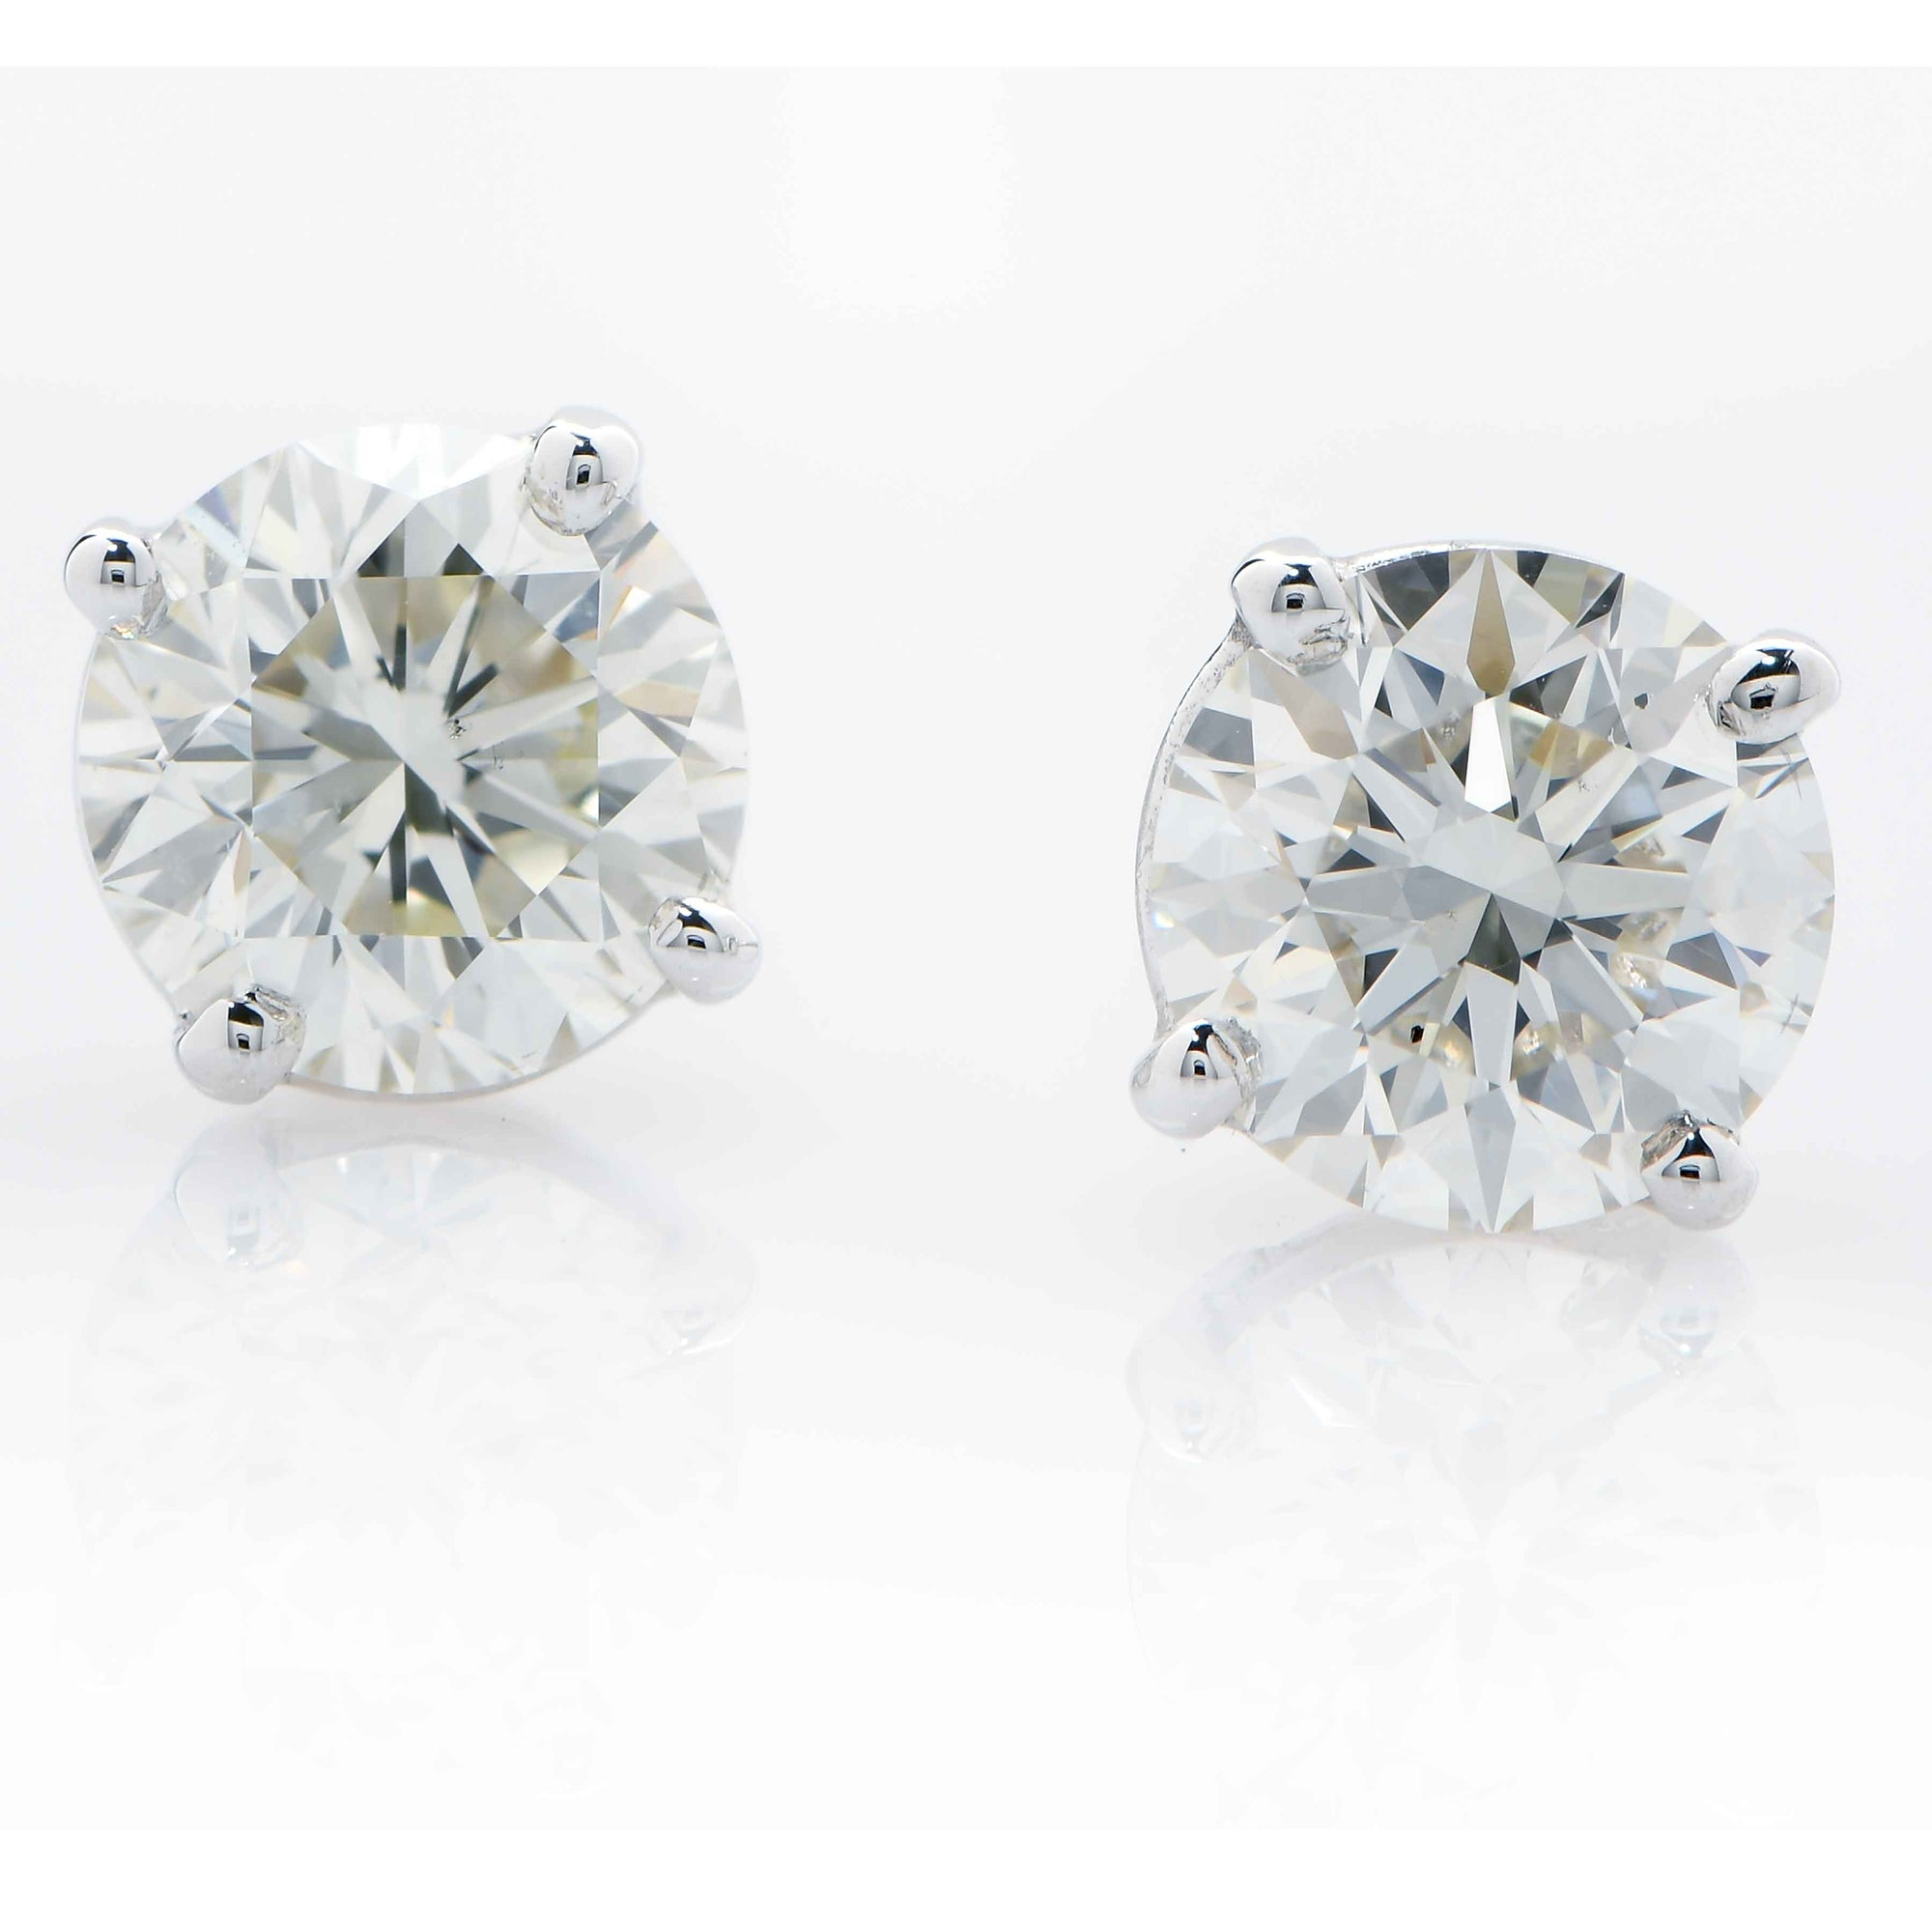 1.66 Carat Total Weight Diamond Stud Earrings